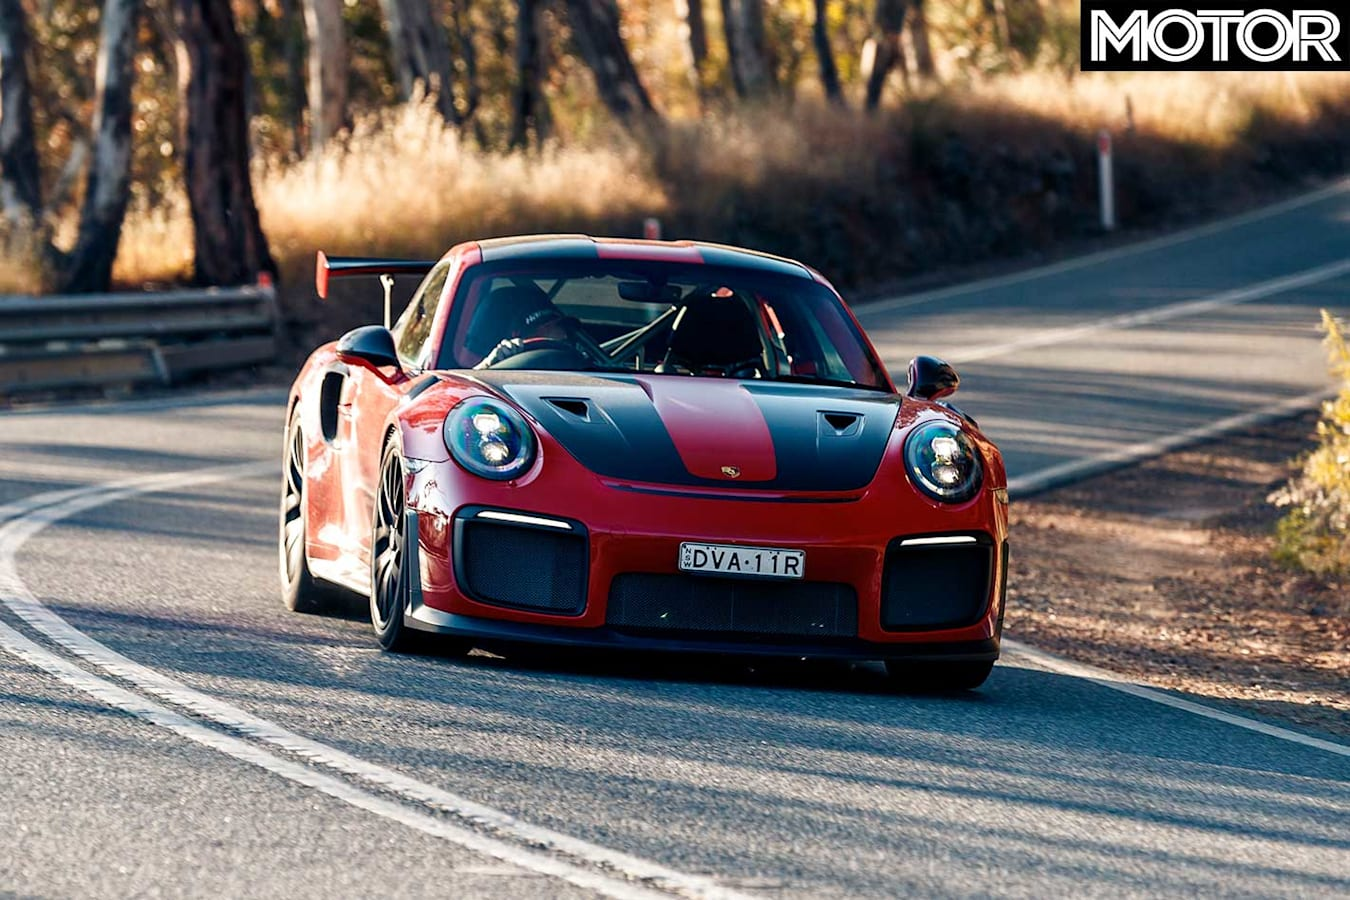 Opinion 2019 Performance Car Of The Year Winner Explained 911 GT 2 RS Handling Jpg